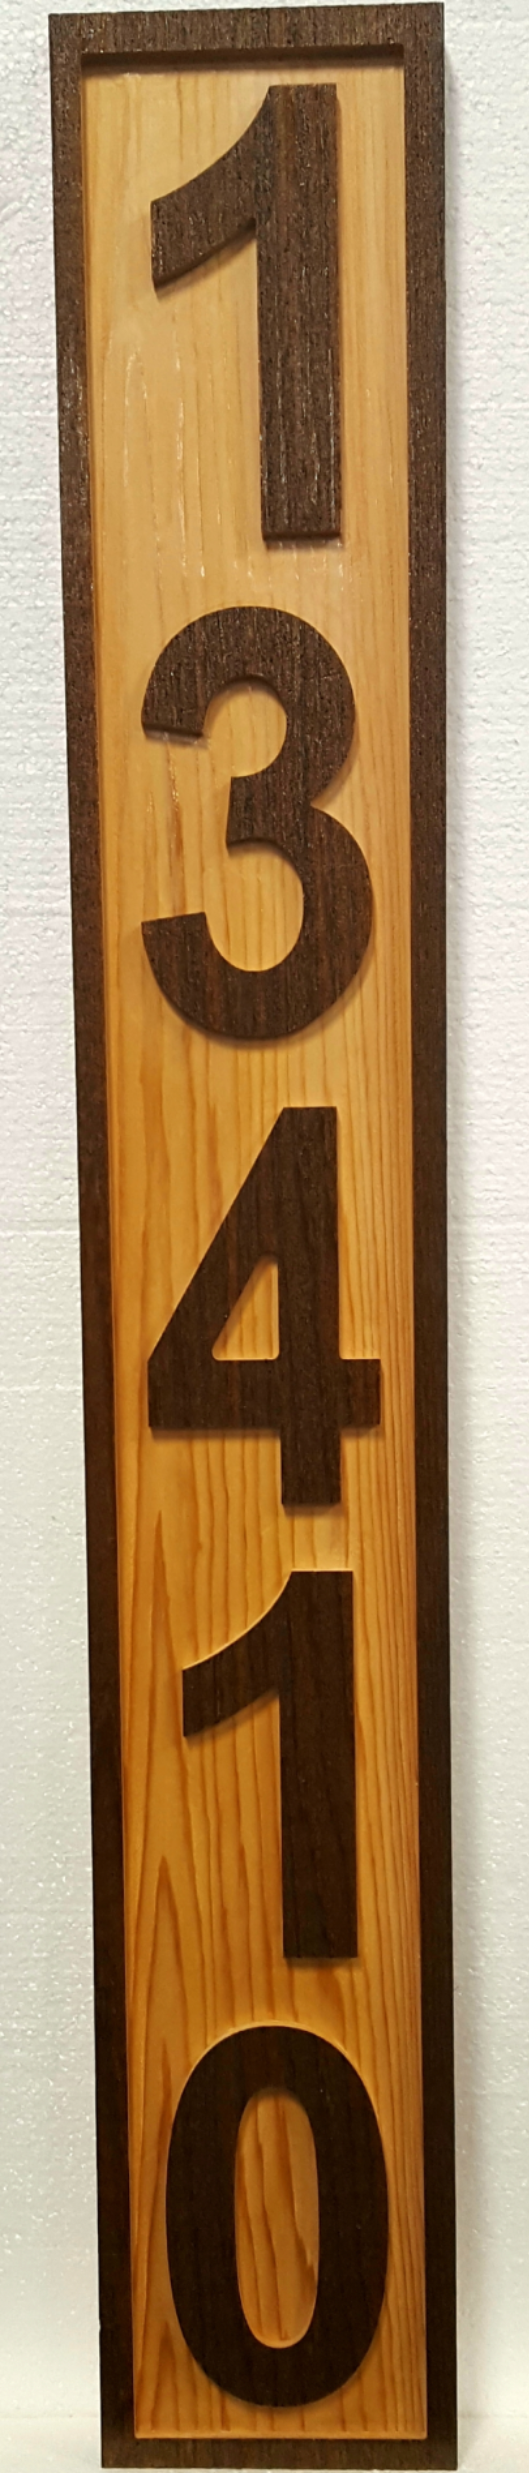 Custom House Number Sign - Five Numbers